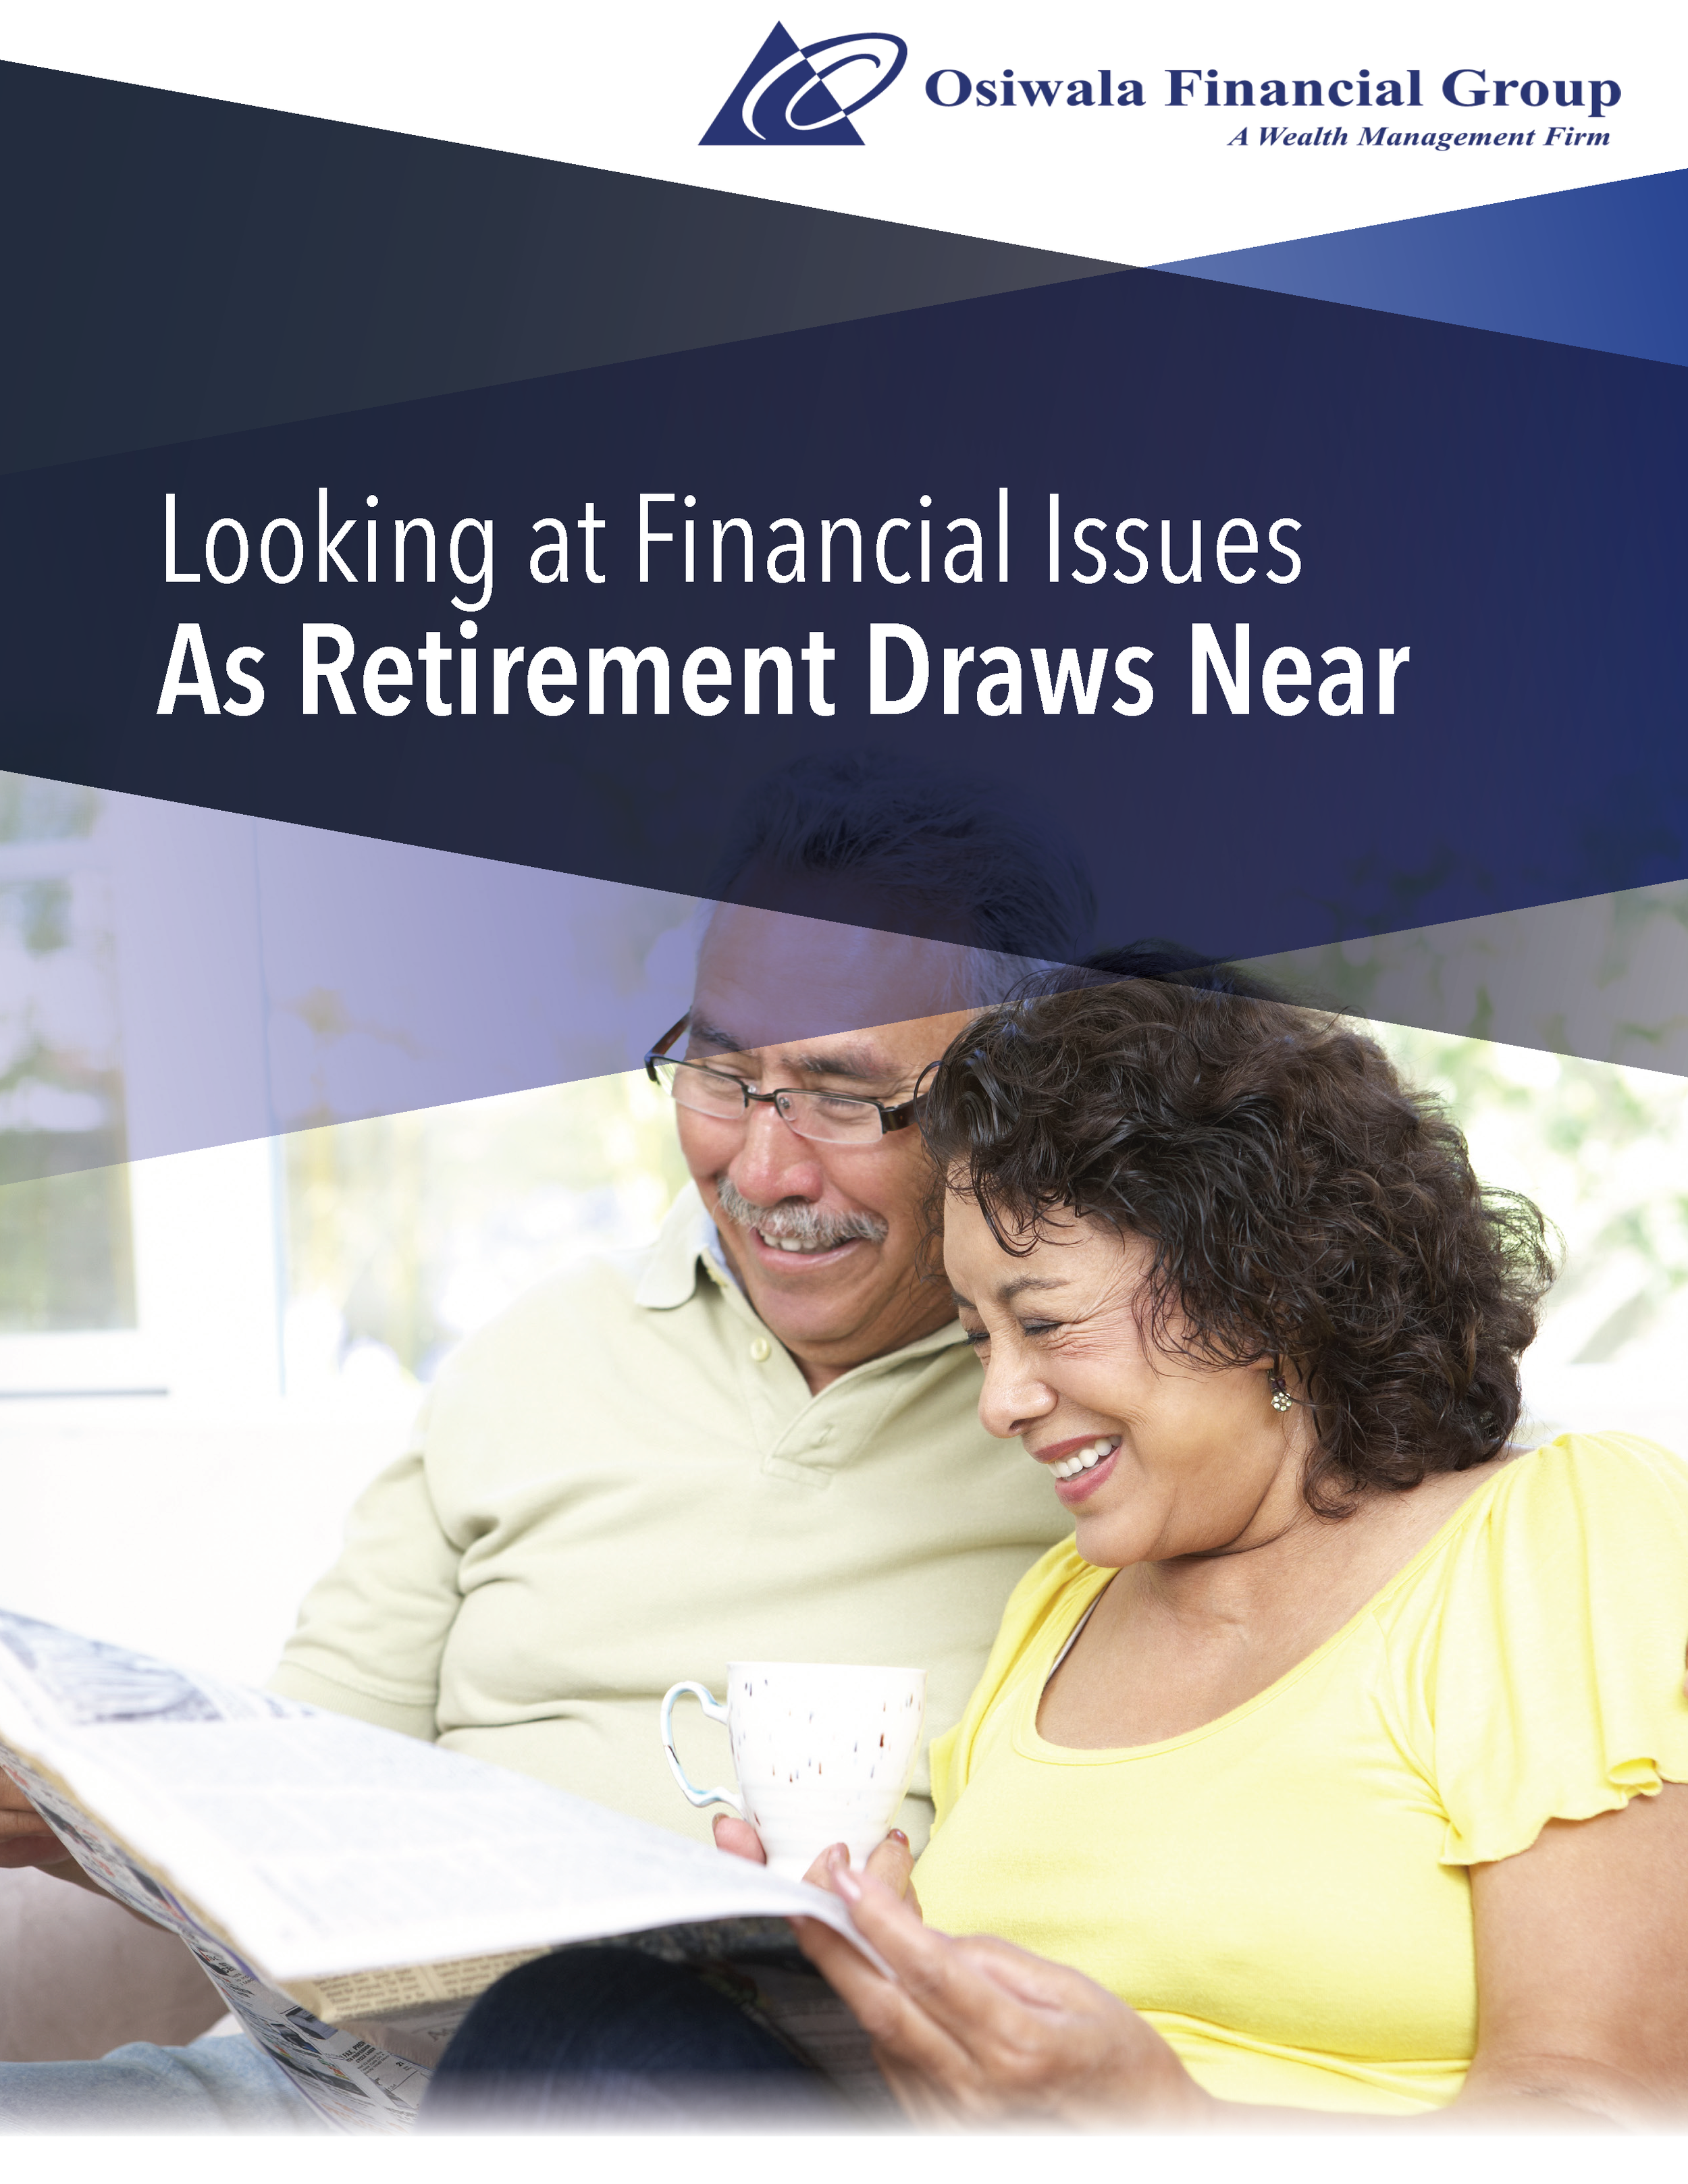 Looking at Financial Issues as Retirement Draws Near